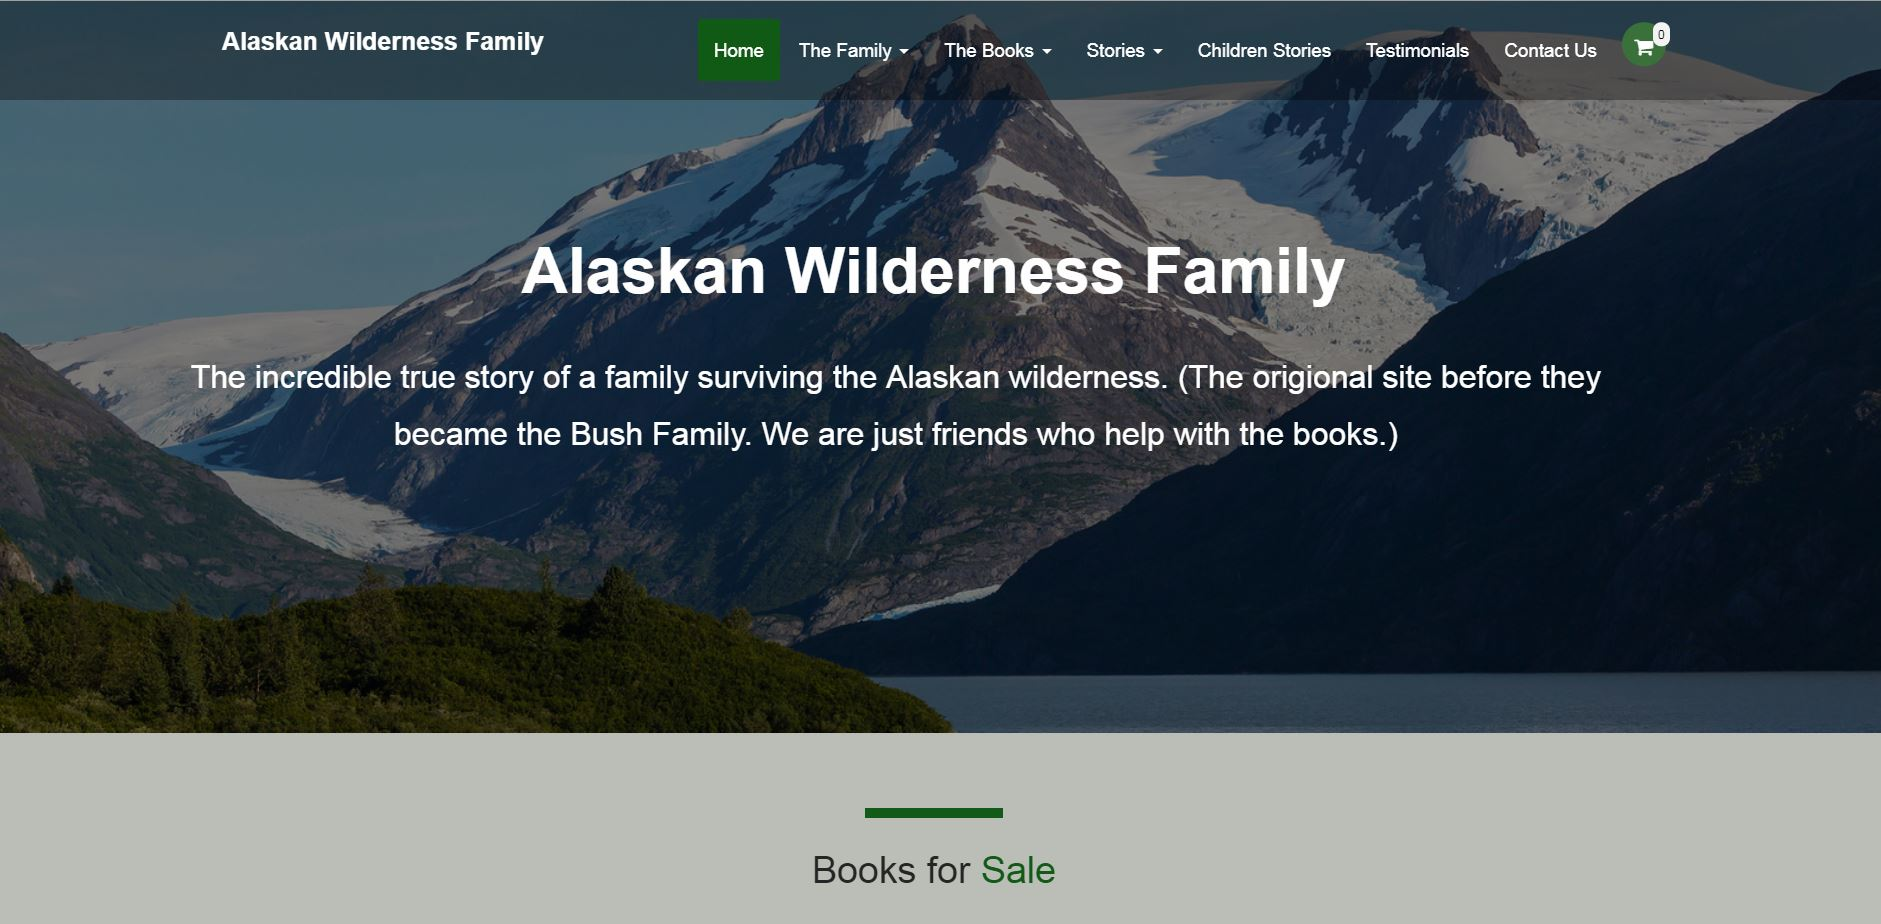 Alaska Wilderness Family